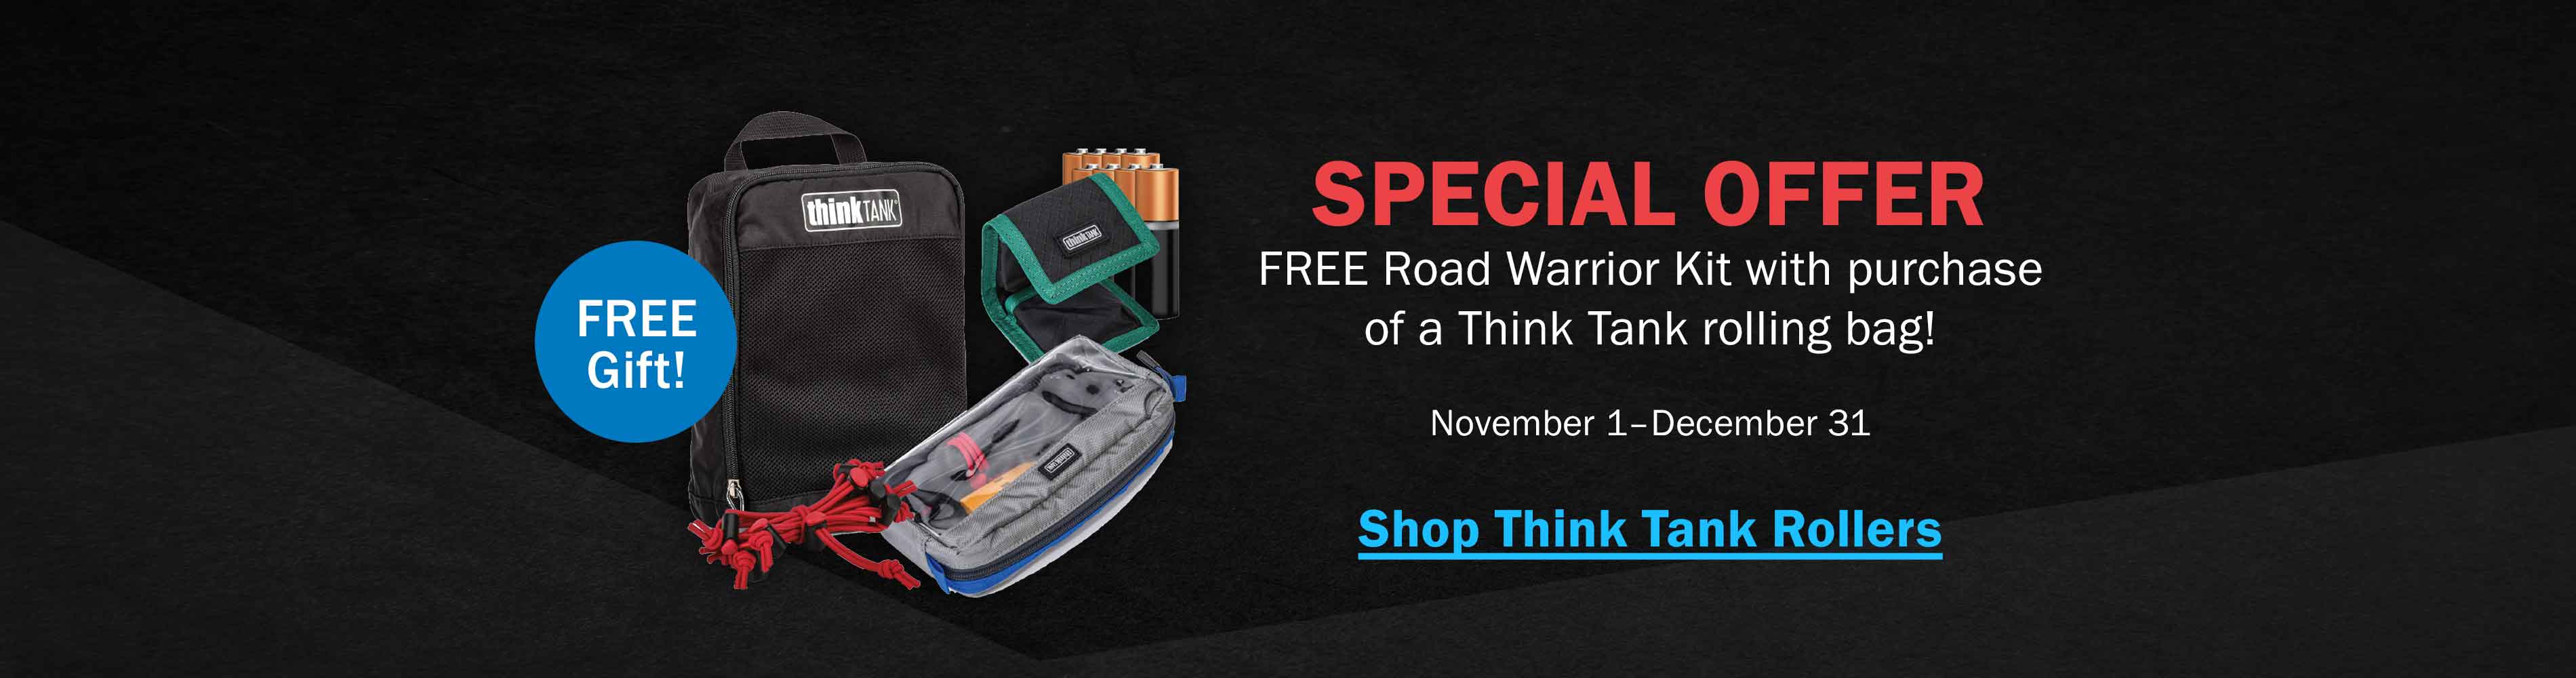 Special Offer! Free Road Warrior Kit with purchase of a Think Tank rolling bag! November 1-December 31. Shop Think Tank Rollers >